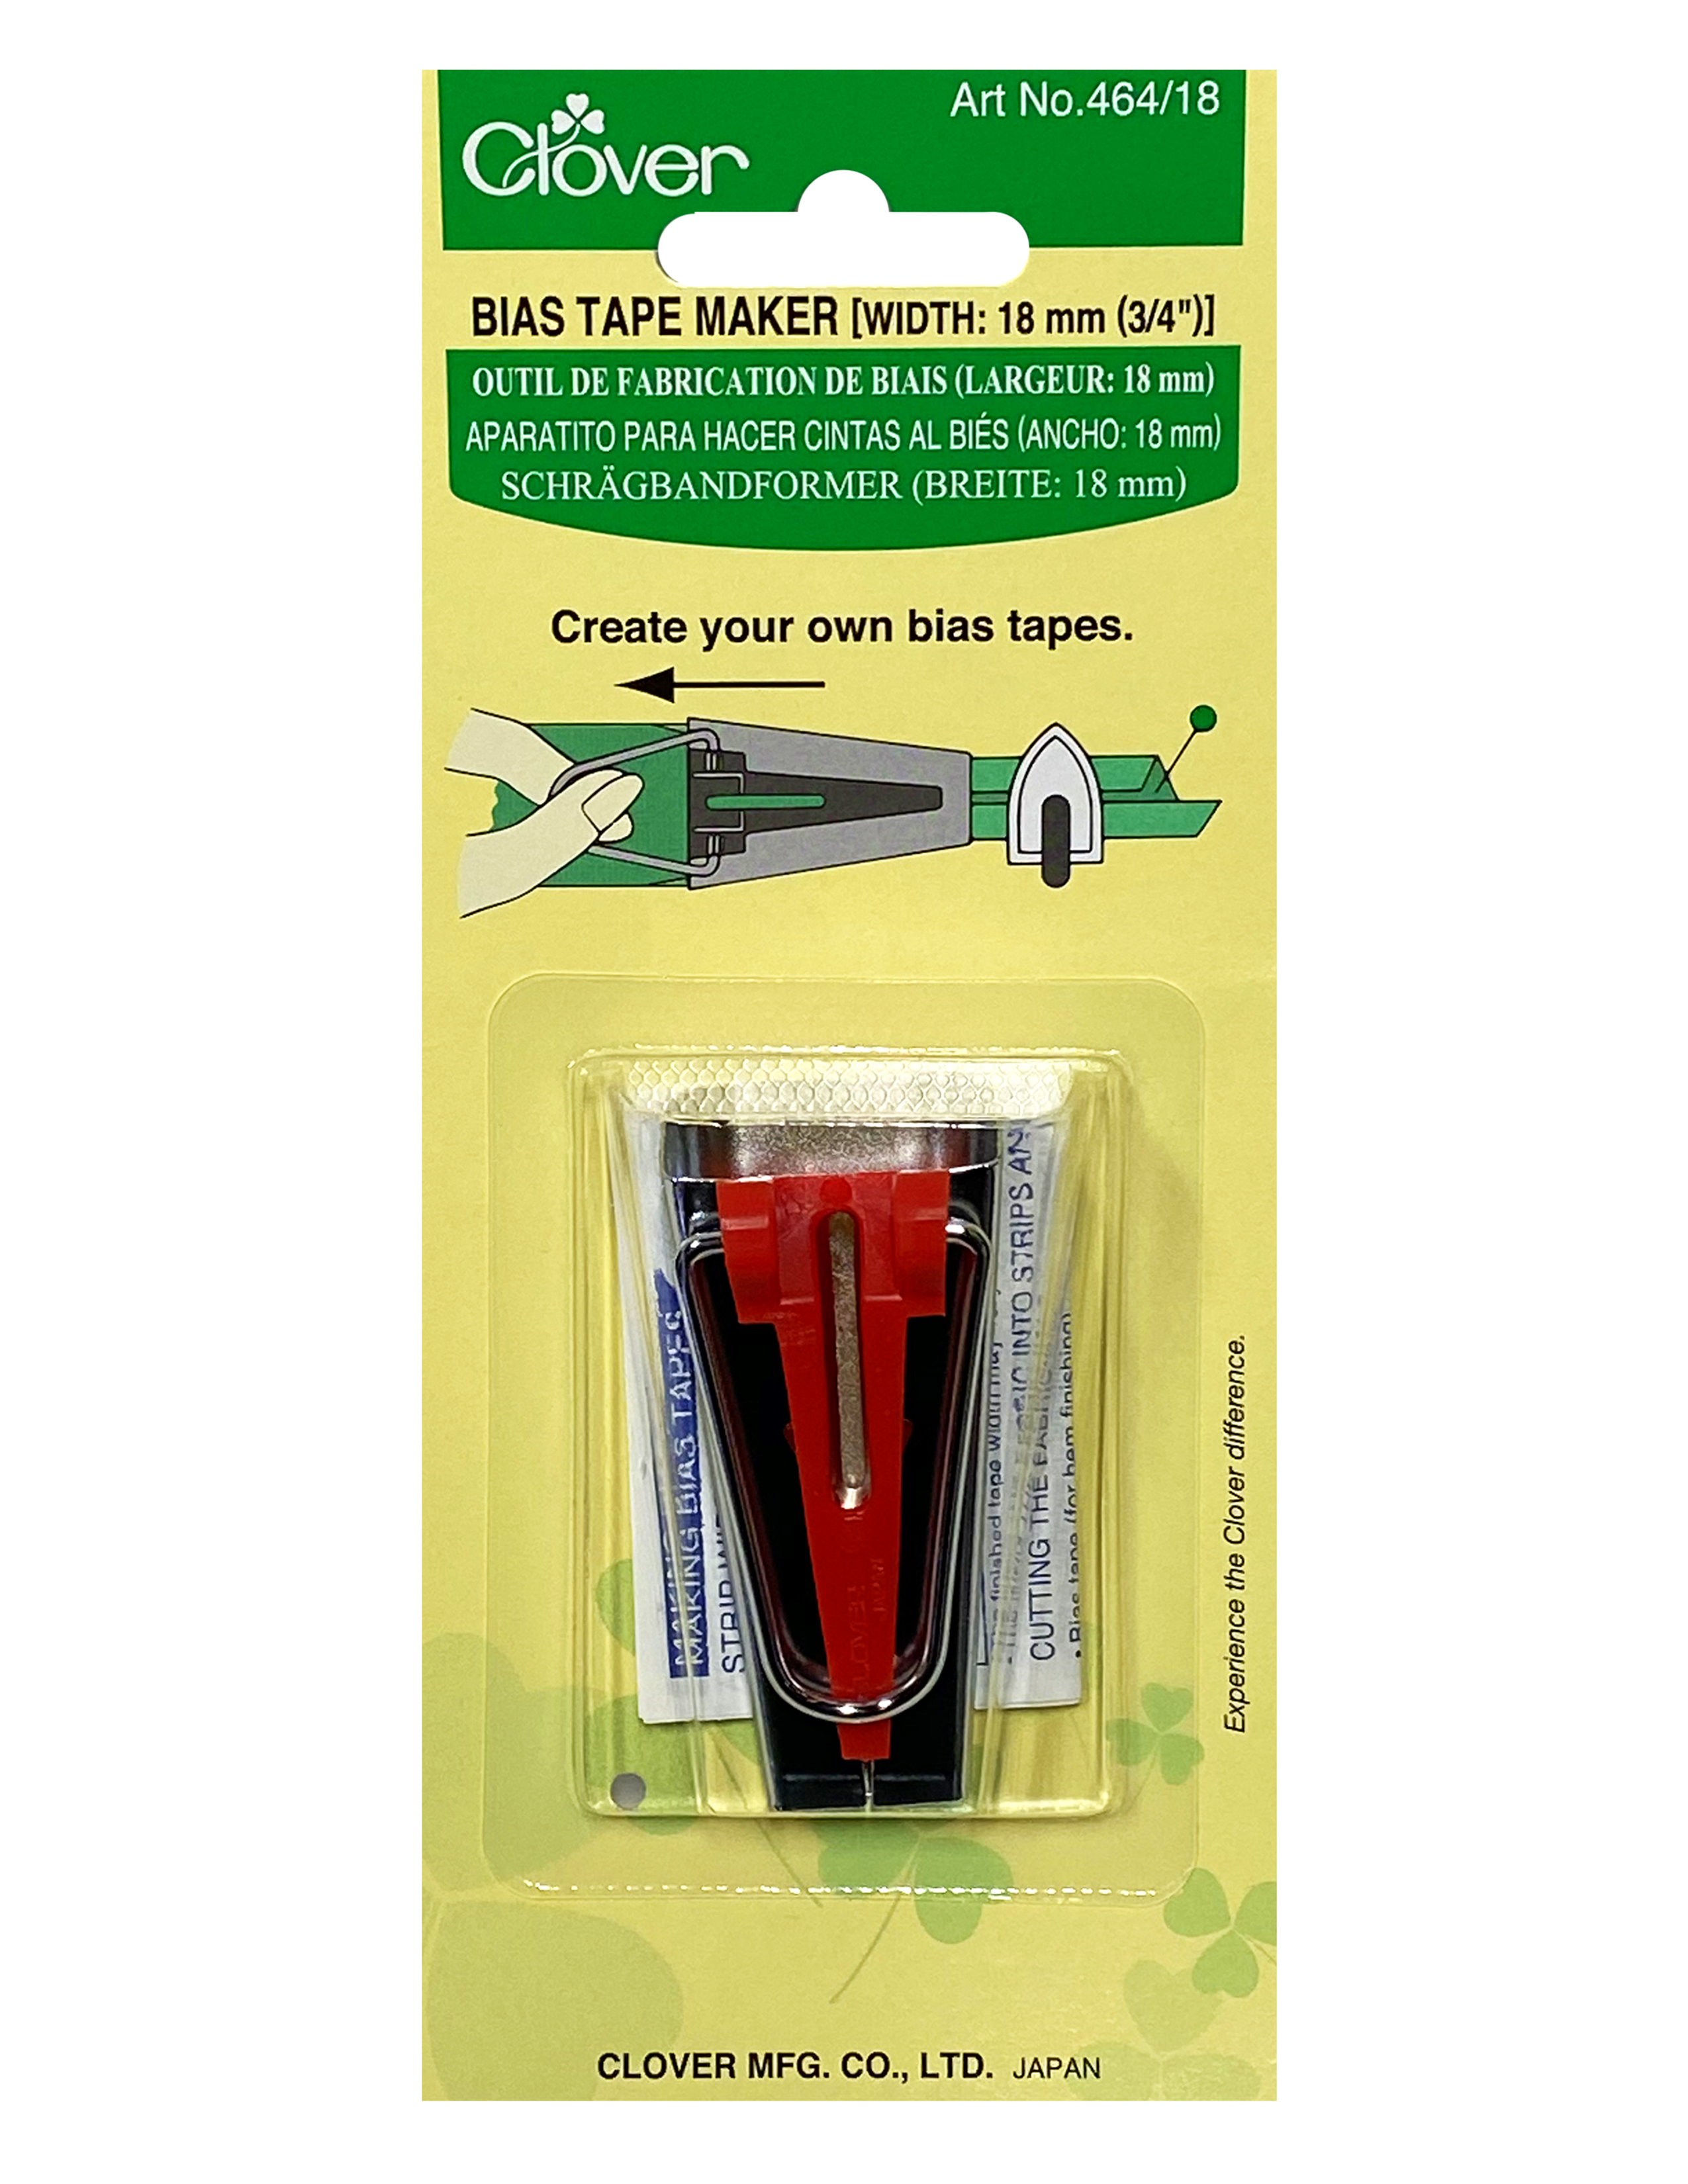 Clover Bias Tape Makers Item #464 / 18 (18mm 3/4